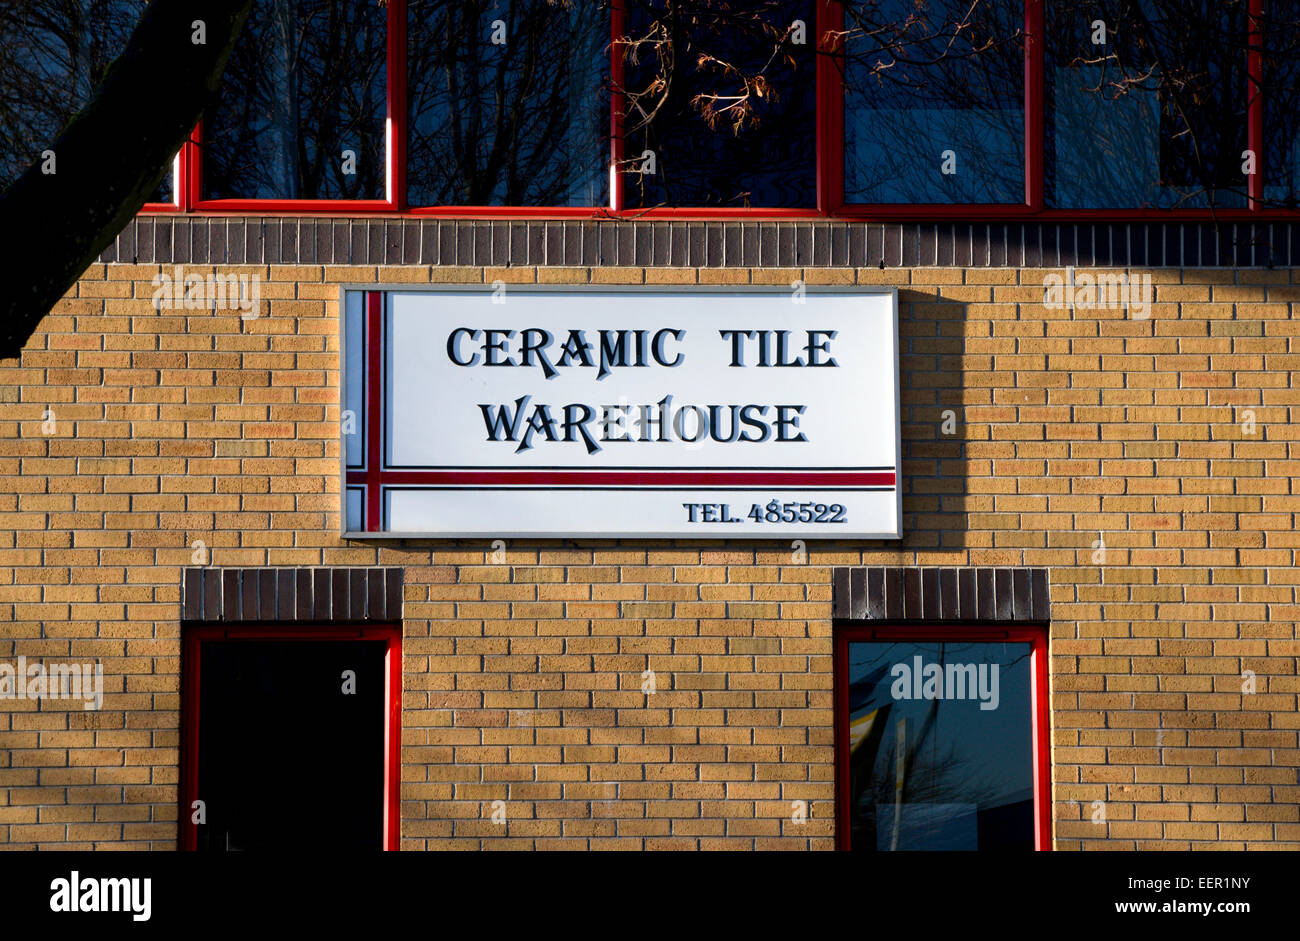 Ceramic Tile Warehouse Ocean Way Cardiff South Wales UK Stock - Discount tile warehouse near me